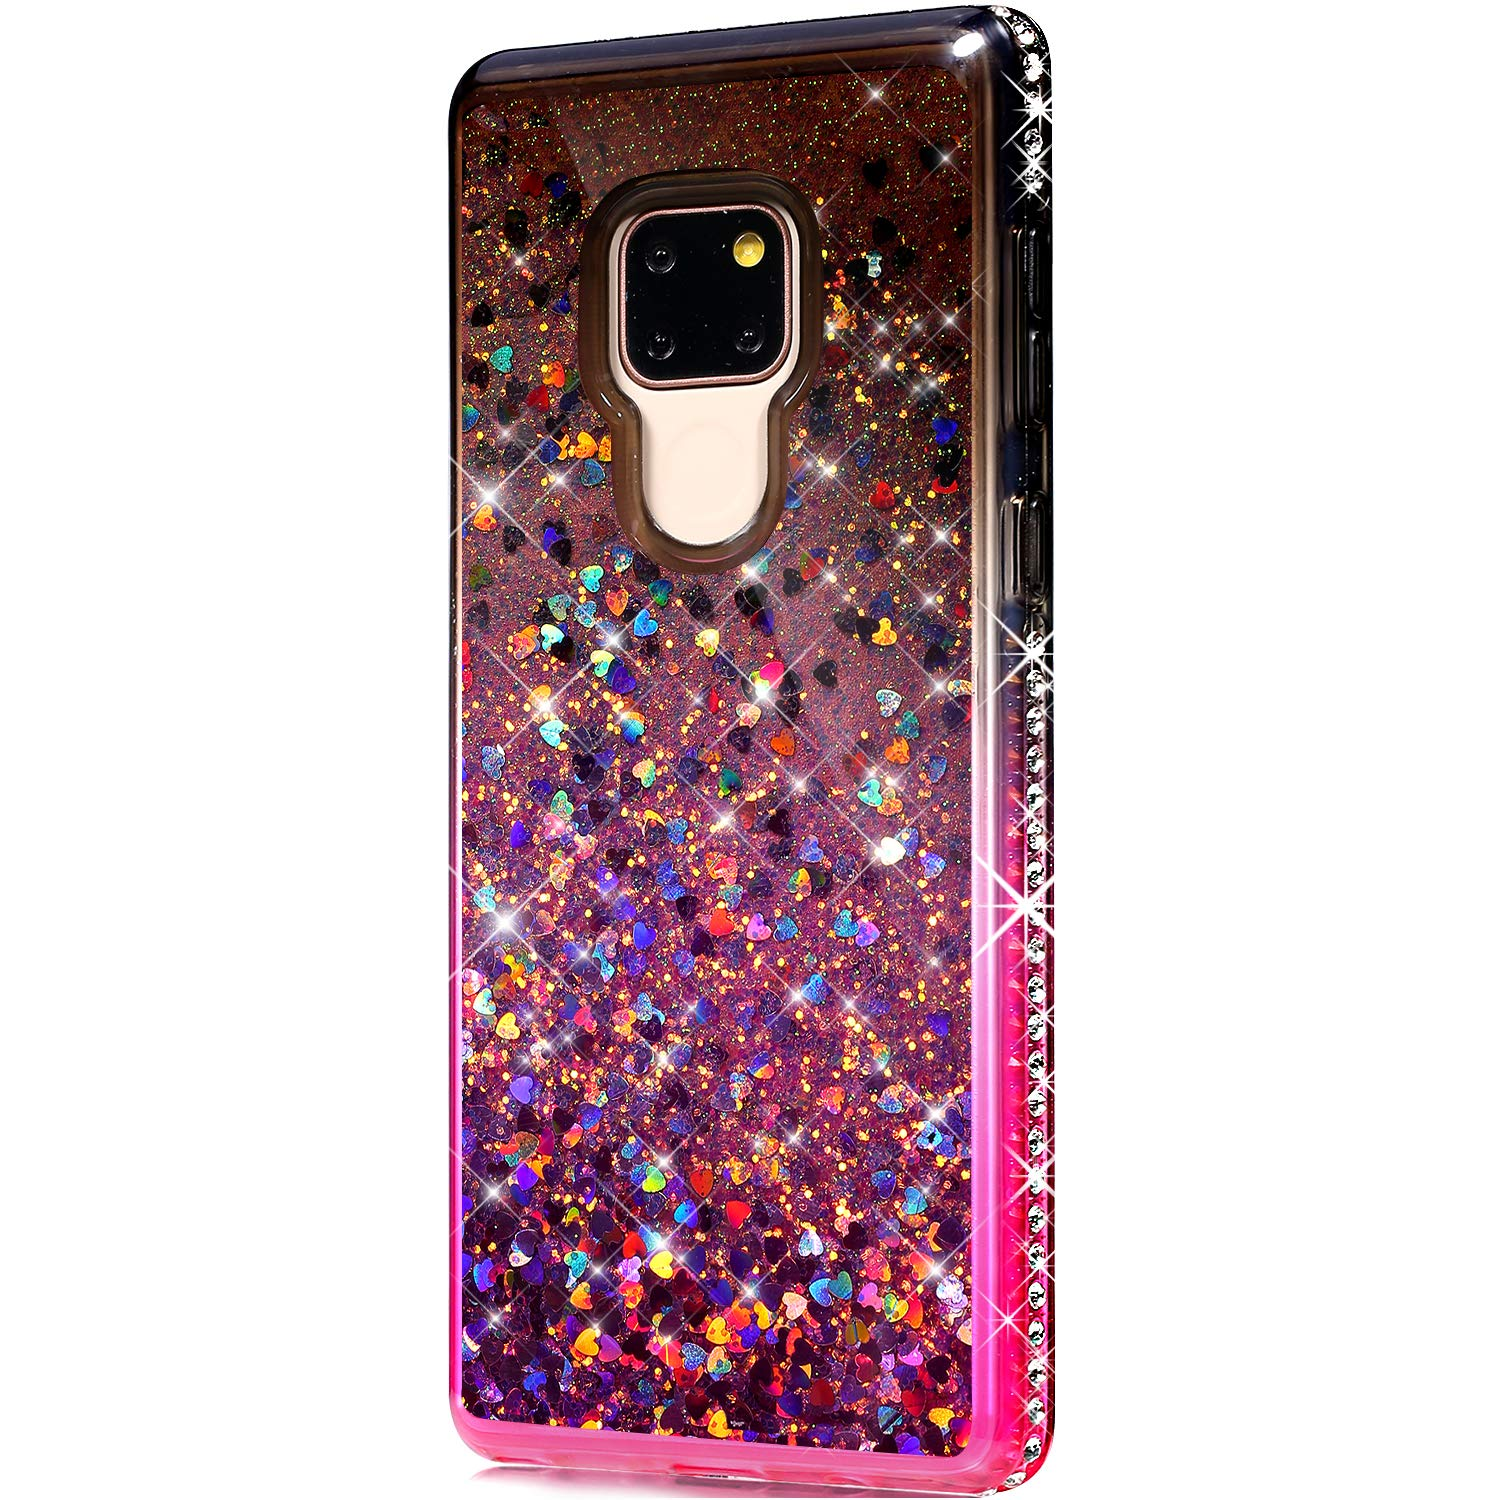 Case for Huawei Mate 20,Girls Women Flowing Floating Liquid Quicksand Bling Glitter Sparkle Rhinestone Diamond Bumper Soft Gradient Color TPU Case Cover for Huawei Mate 20 Bling Case,Black Pink by ikasus